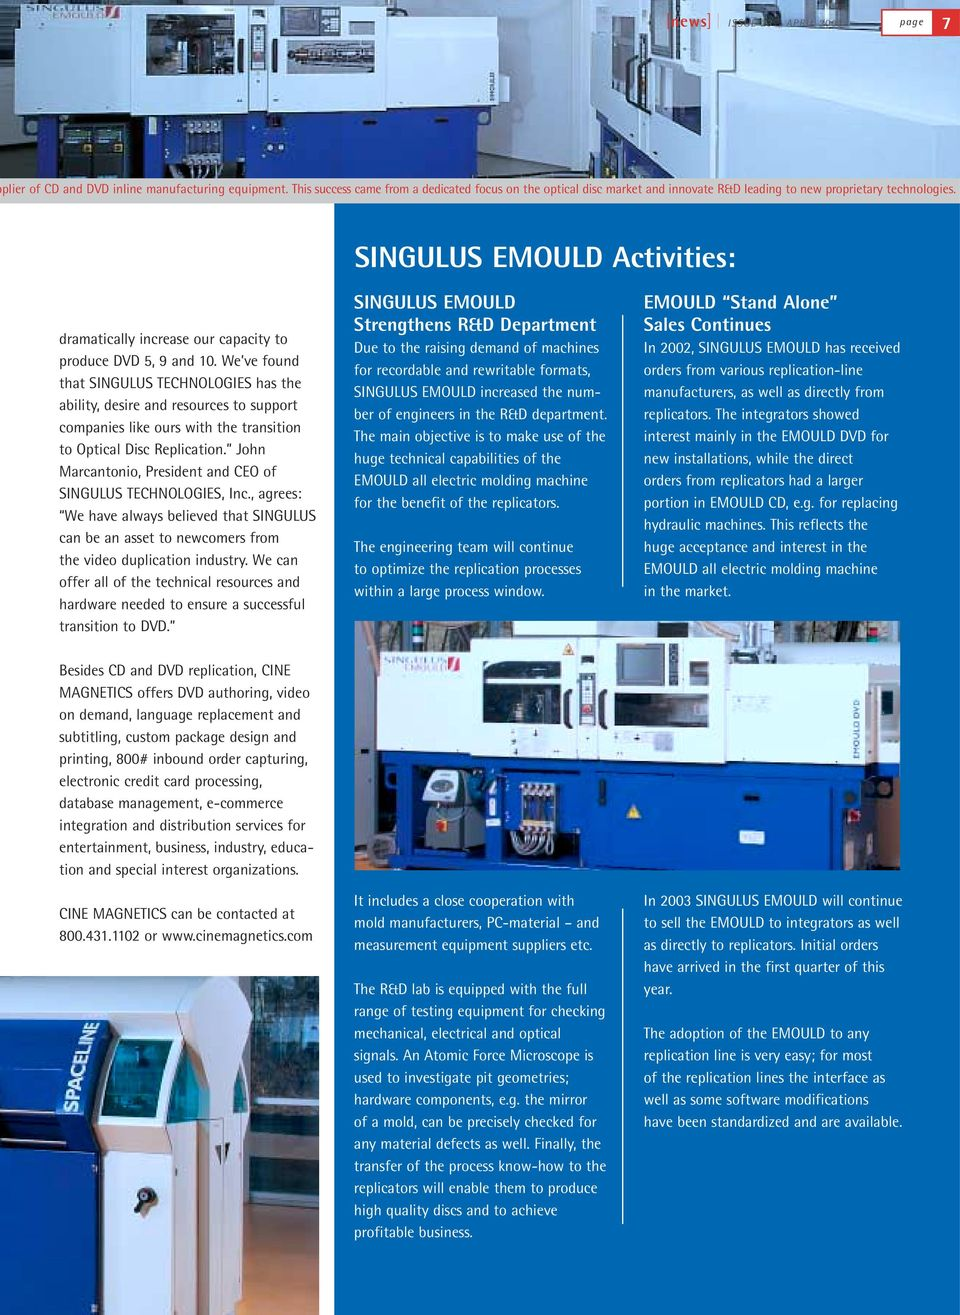 SINGULUS EMOULD Activities: dramatically increase our capacity to produce DVD 5, 9 and 10.